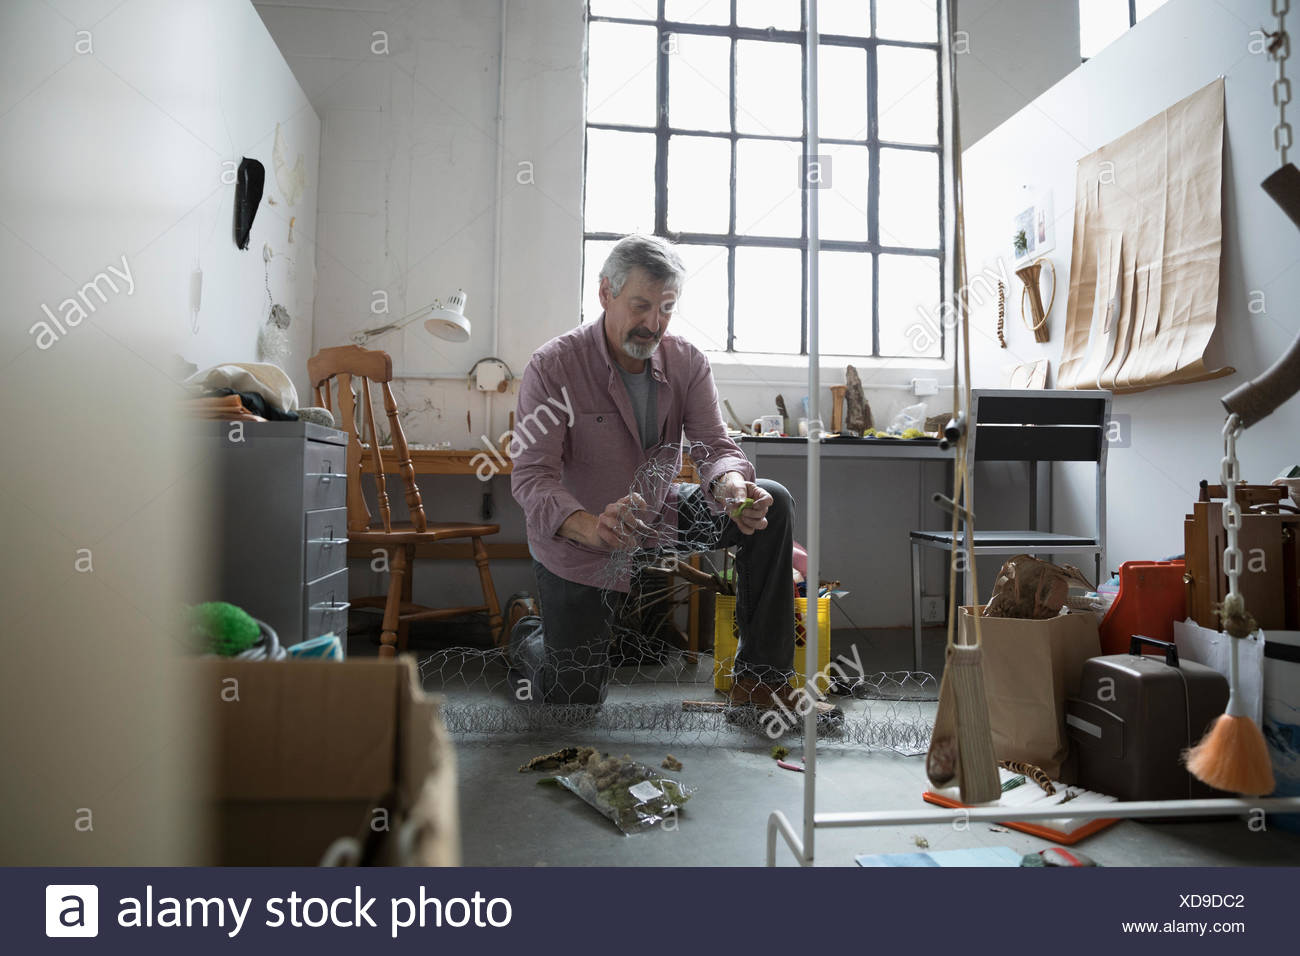 Male artist forming wire in art studio - Stock Image